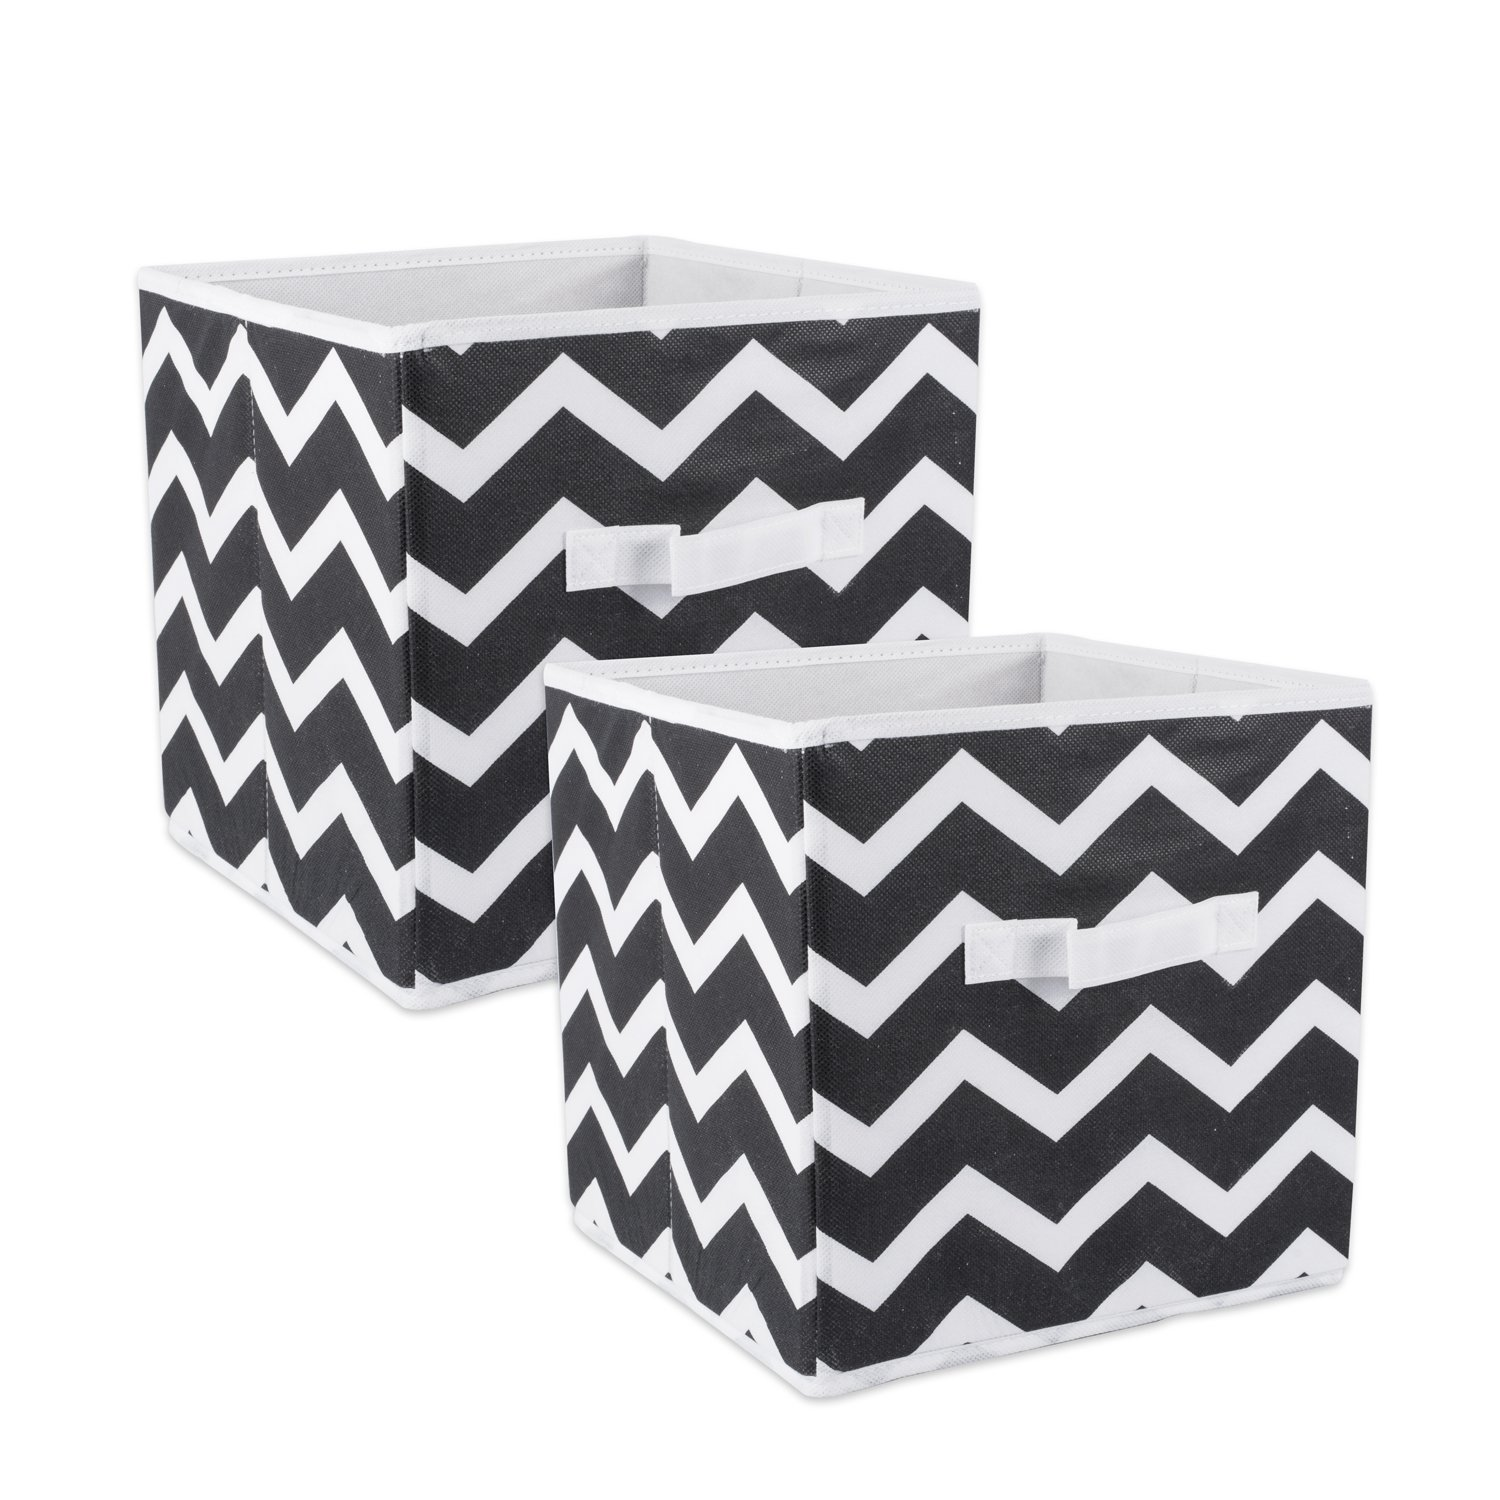 DII Fabric Storage Bins for Nursery, Offices, Home Organization, Containers are Made to Fit Standard Cube Organizers (11x11x11) Chevron Black - Set of 2